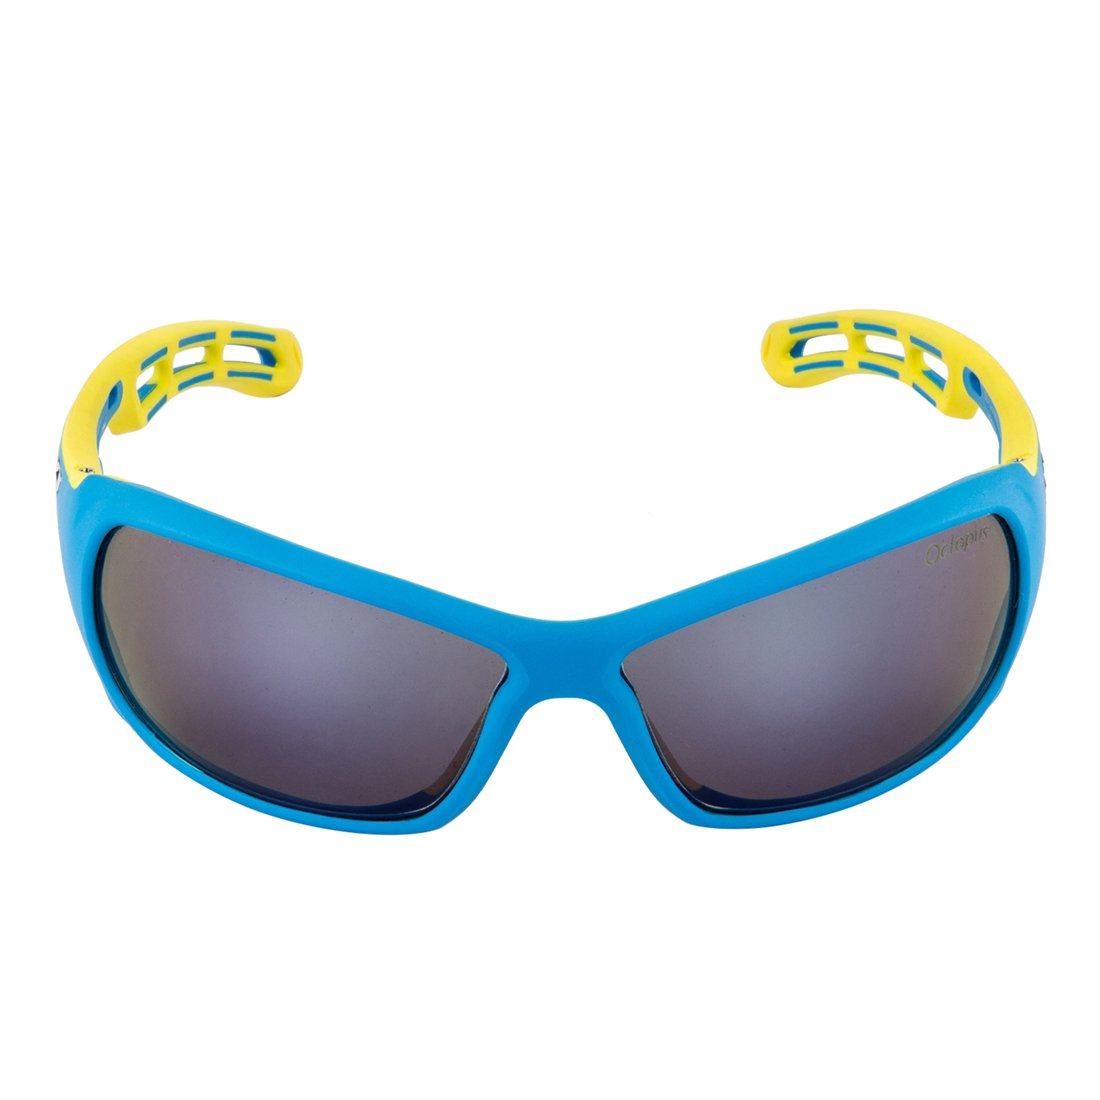 b85c78c53d7d2 Julbo Swell Sunglasses Octopus multi-coloured blue yellow Size Taille L   Amazon.co.uk  Sports   Outdoors